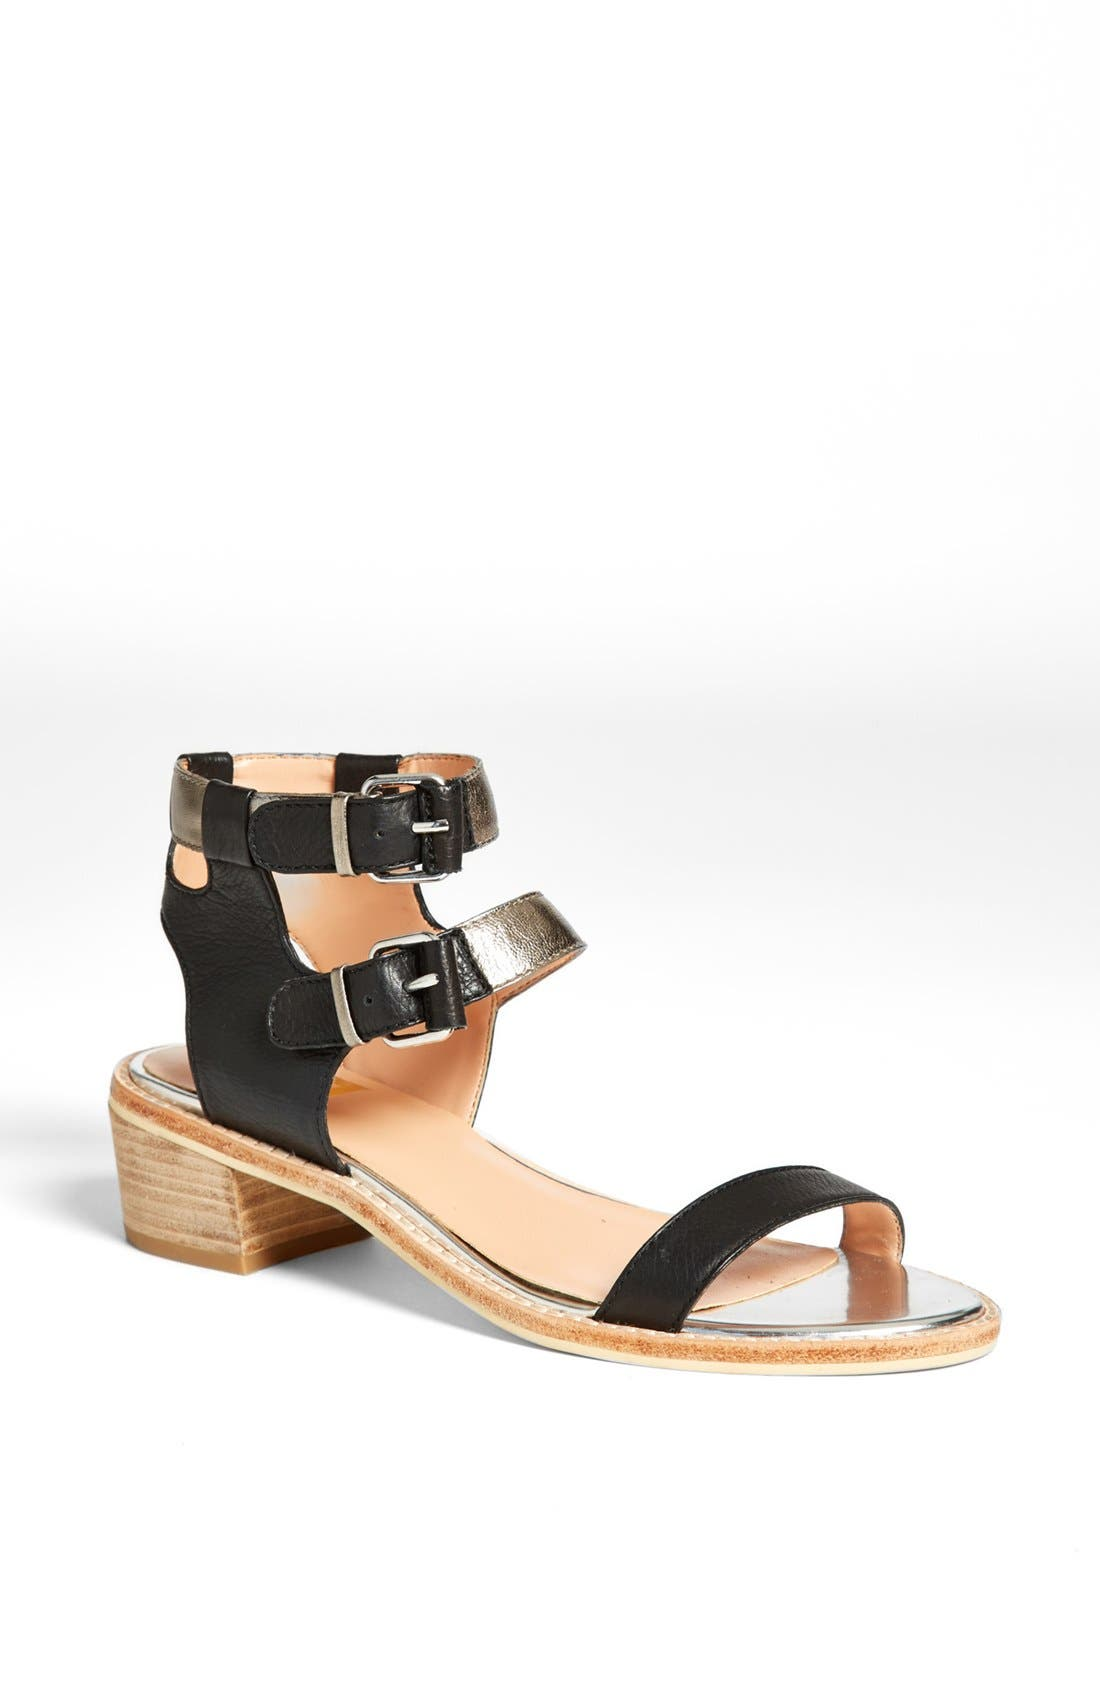 DV BY DOLCE VITA 'Zinc' Sandal, Main, color, 001